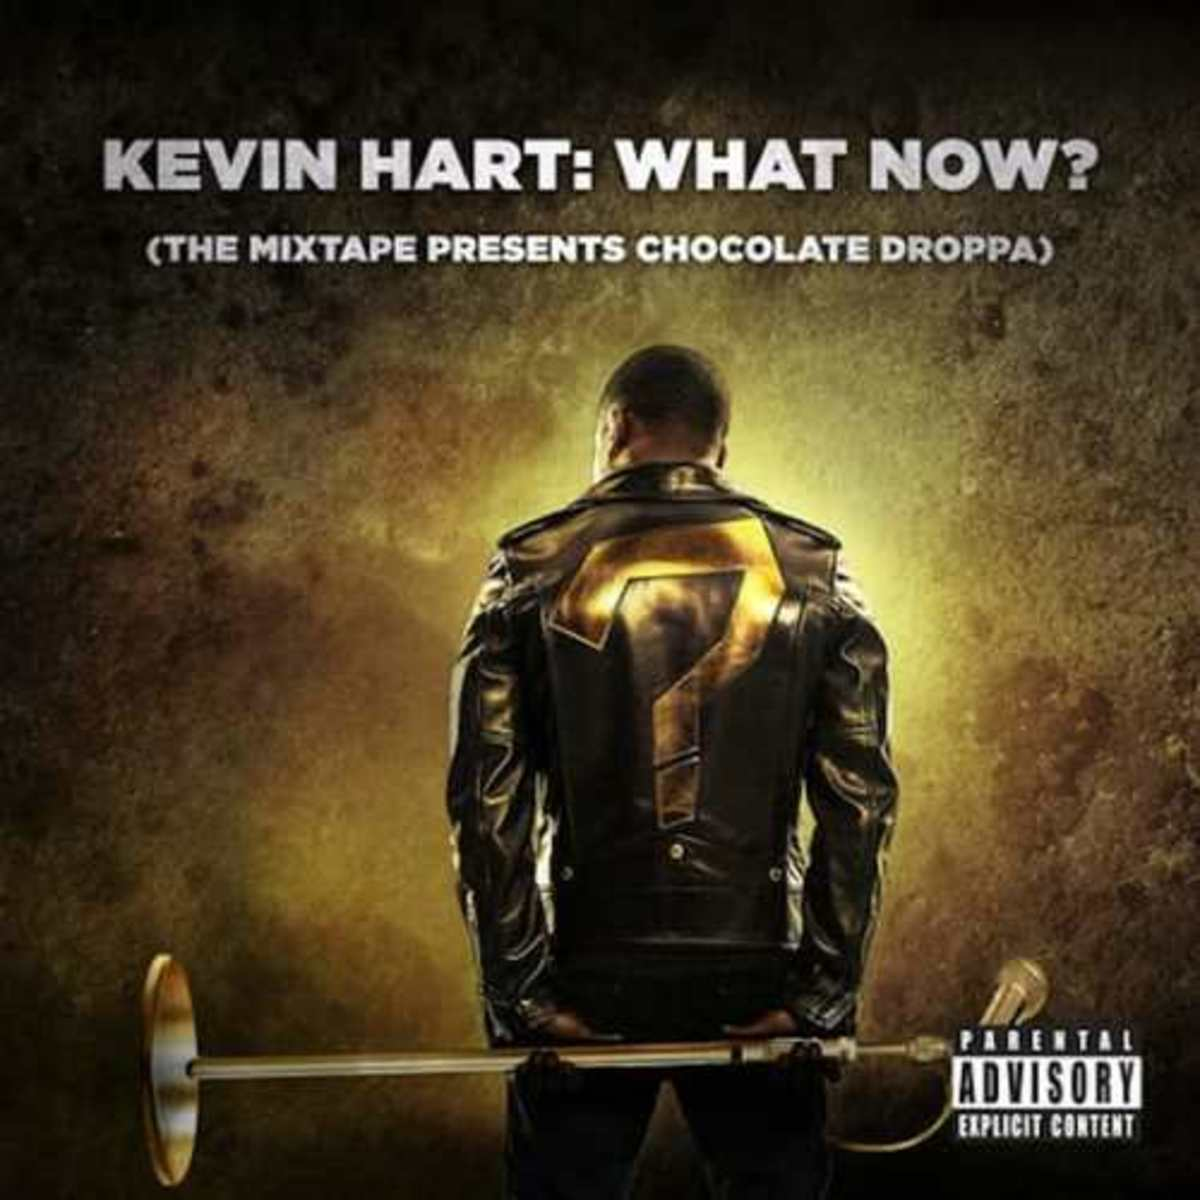 kevin-hart-what-now.jpg